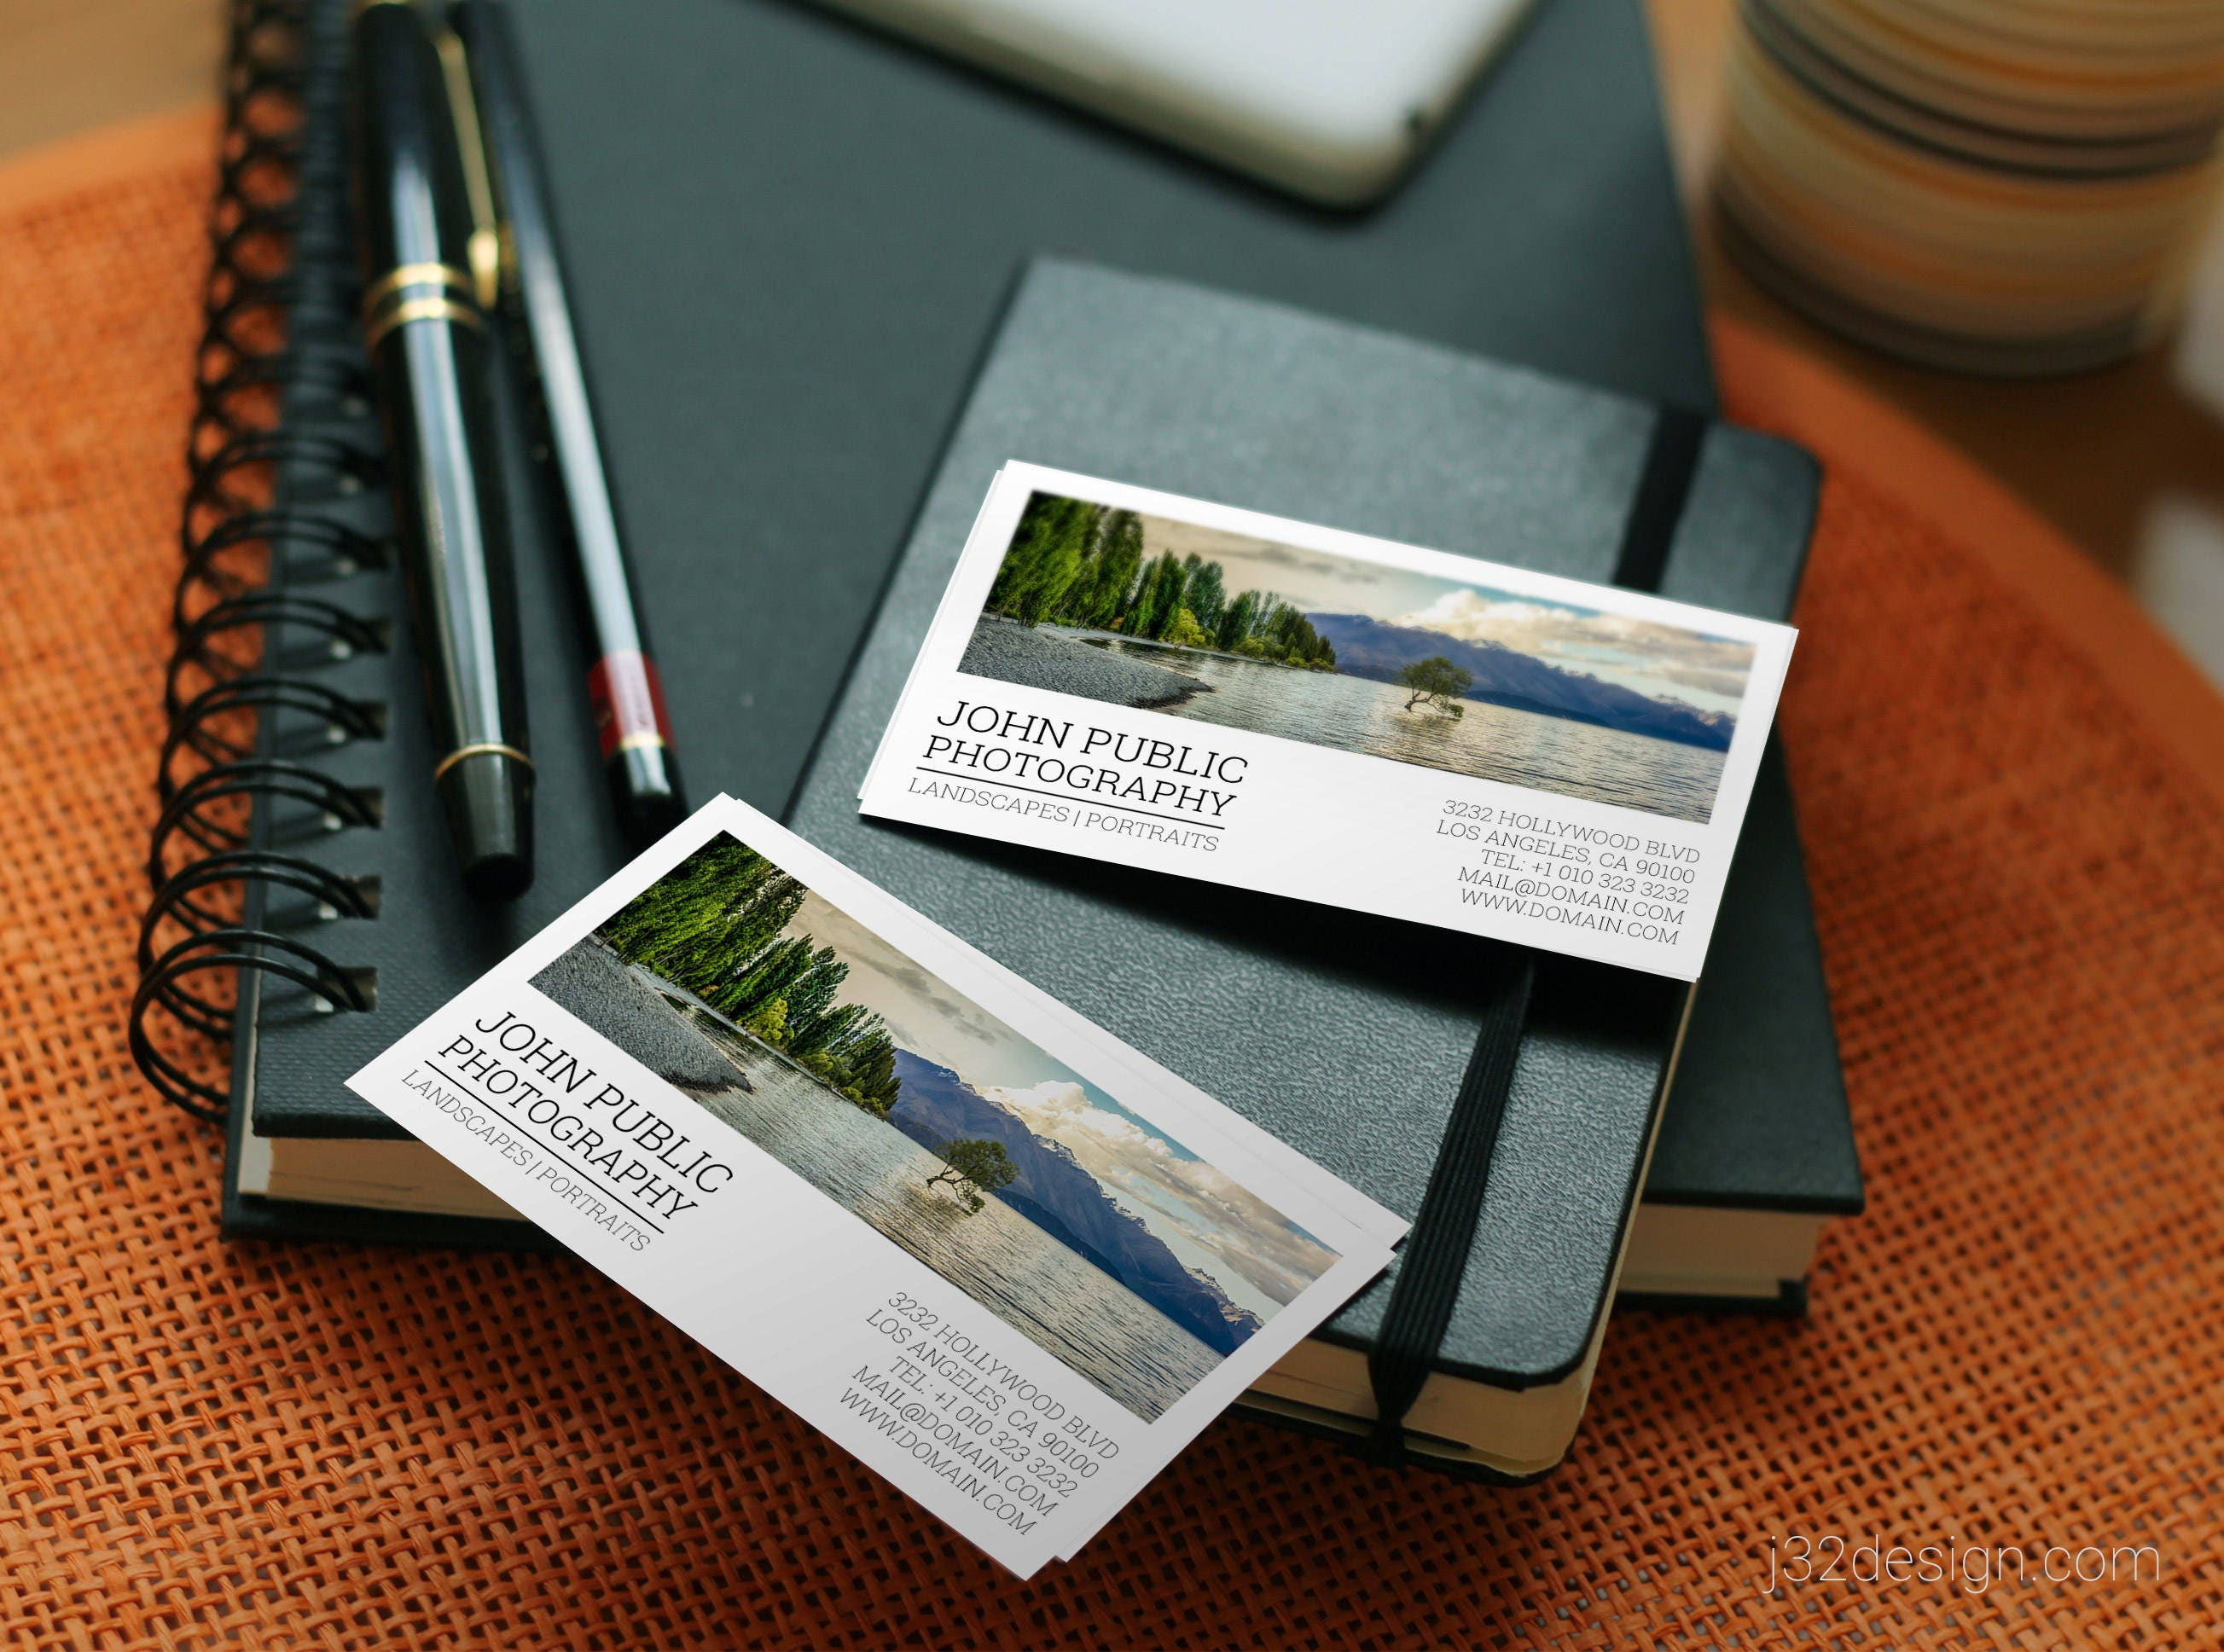 Photographer business cards template psd instant download photographer business cards template psd instant download portrait landscape photographers fbccfo Gallery